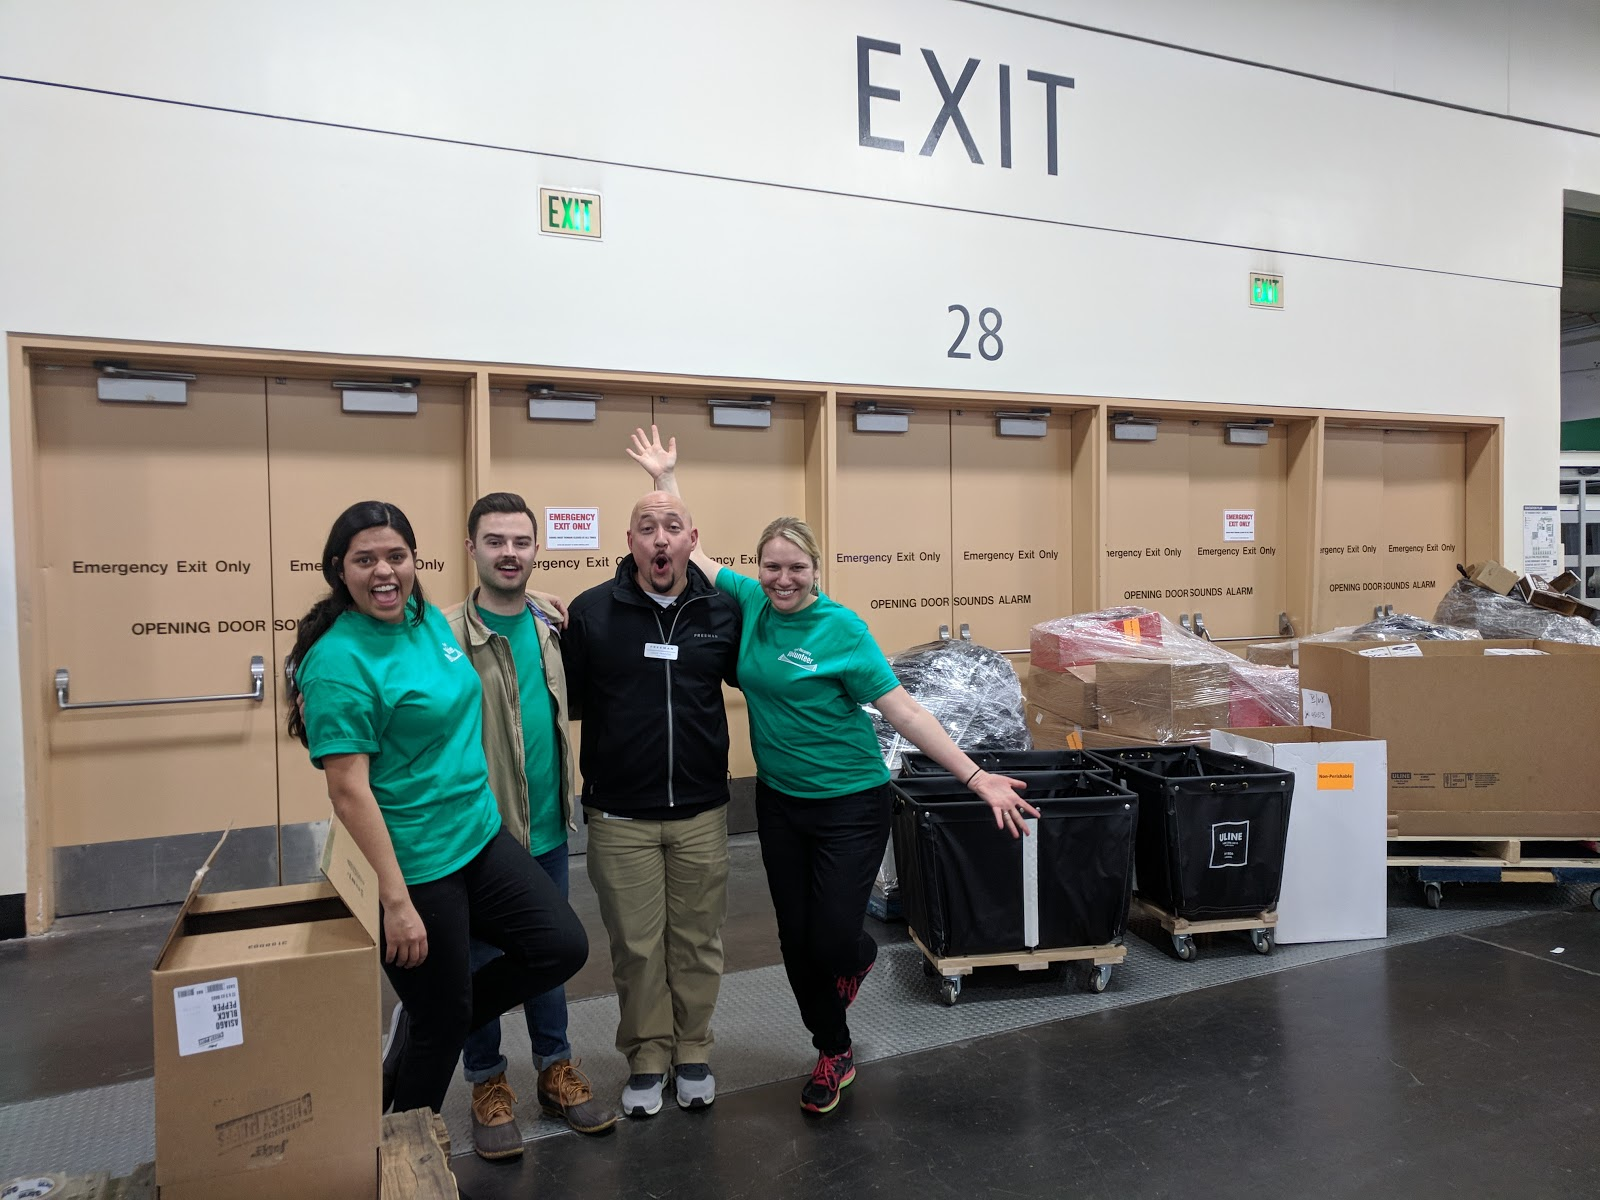 FRN National's 2018 Winter Fancy Food Show Recovery Organizers (Paloma Sisneros-Lobato, Michael Boyd, and Annie Lobel, in green shirts) with the Director of Freight Operations at The Freeman Company (Louis Travieso, center) ecstatic to see the amount of incredible food being redirected from the landfill